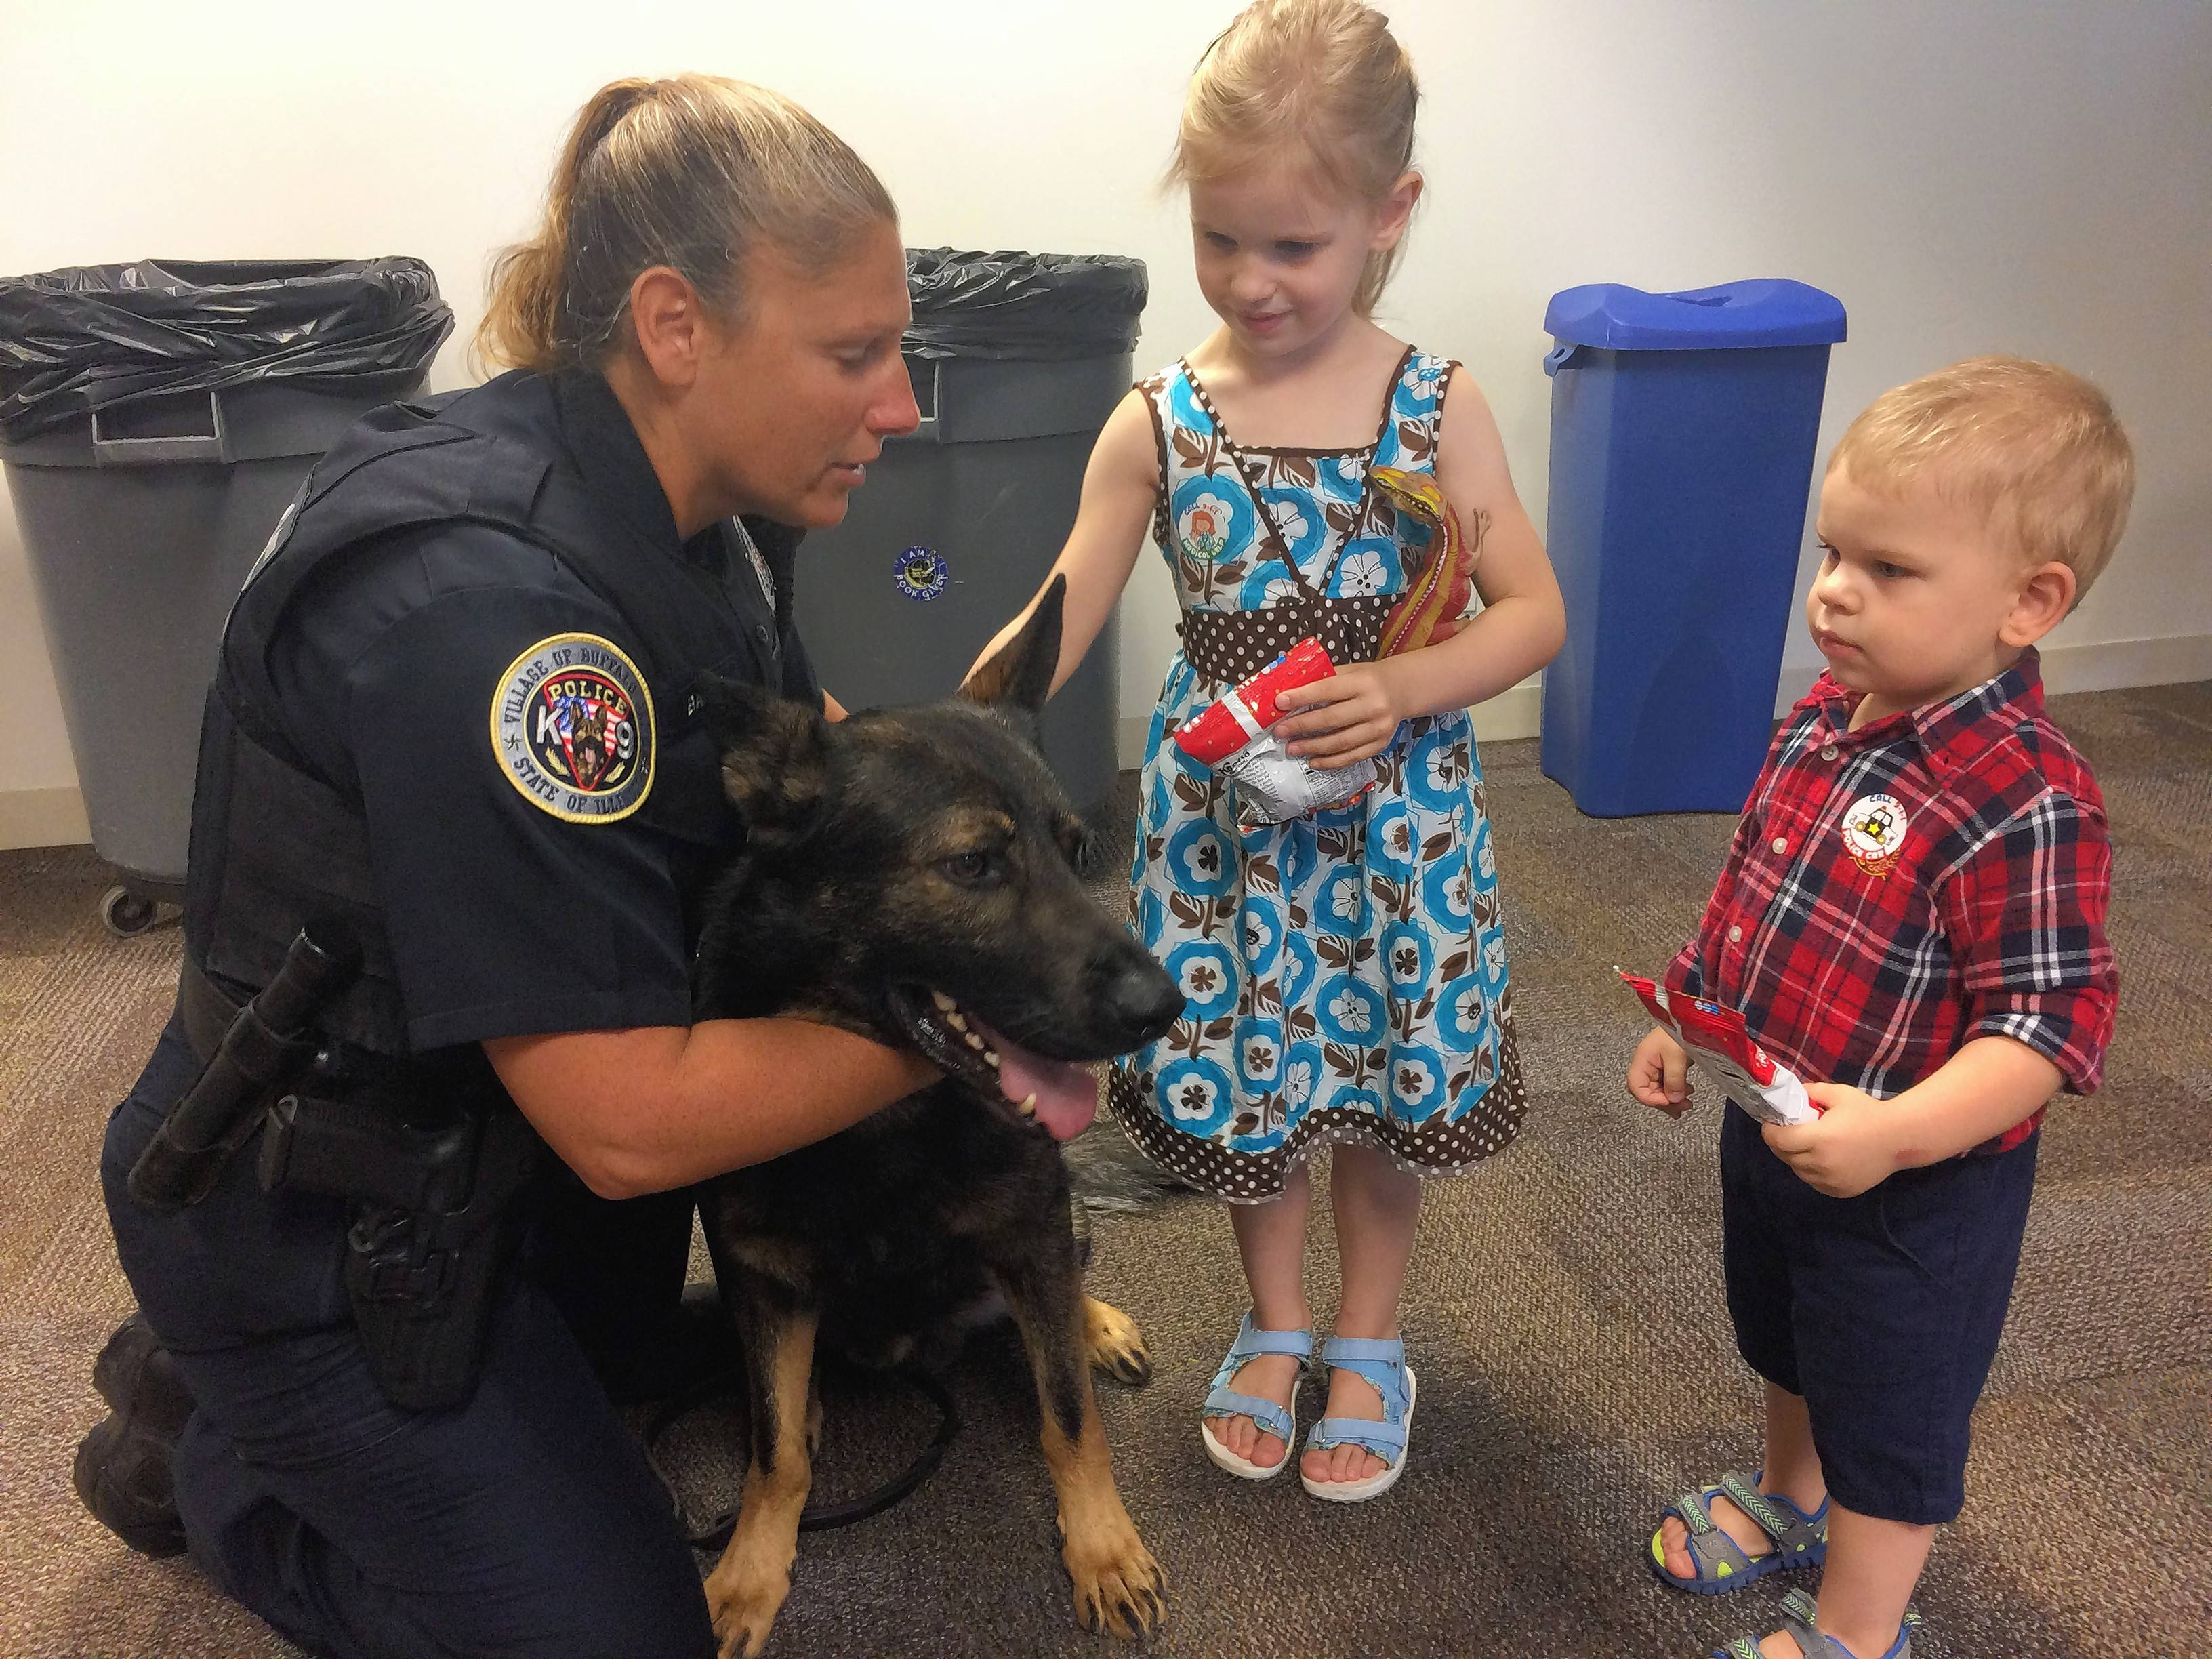 Zofia Mroczkowski, 5, and her brother Arsen, 2, greet Buffalo Grove police officer Danielle Baron and Hogyn the German shepherd at the Vernon Area Public Library in Lincolnshire on Friday.